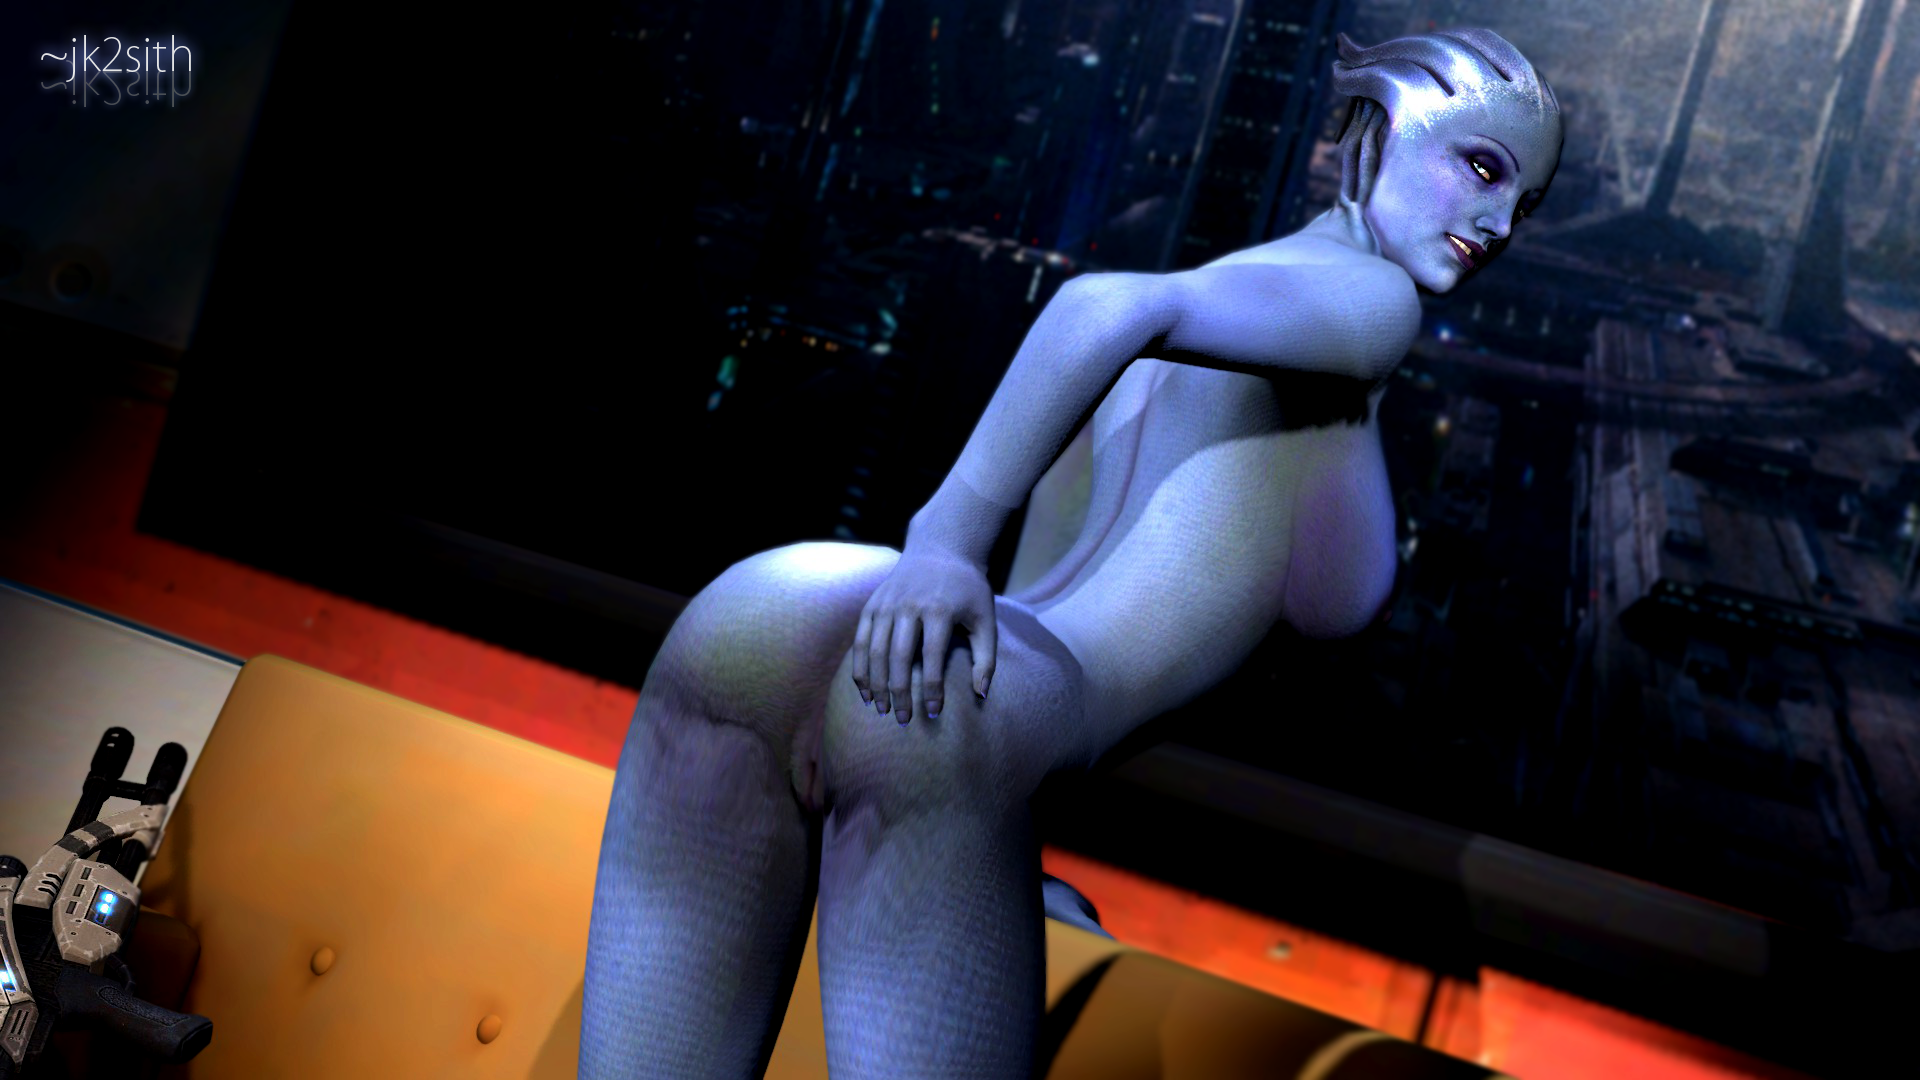 Naked pictures of liara in mass effect hentia clips